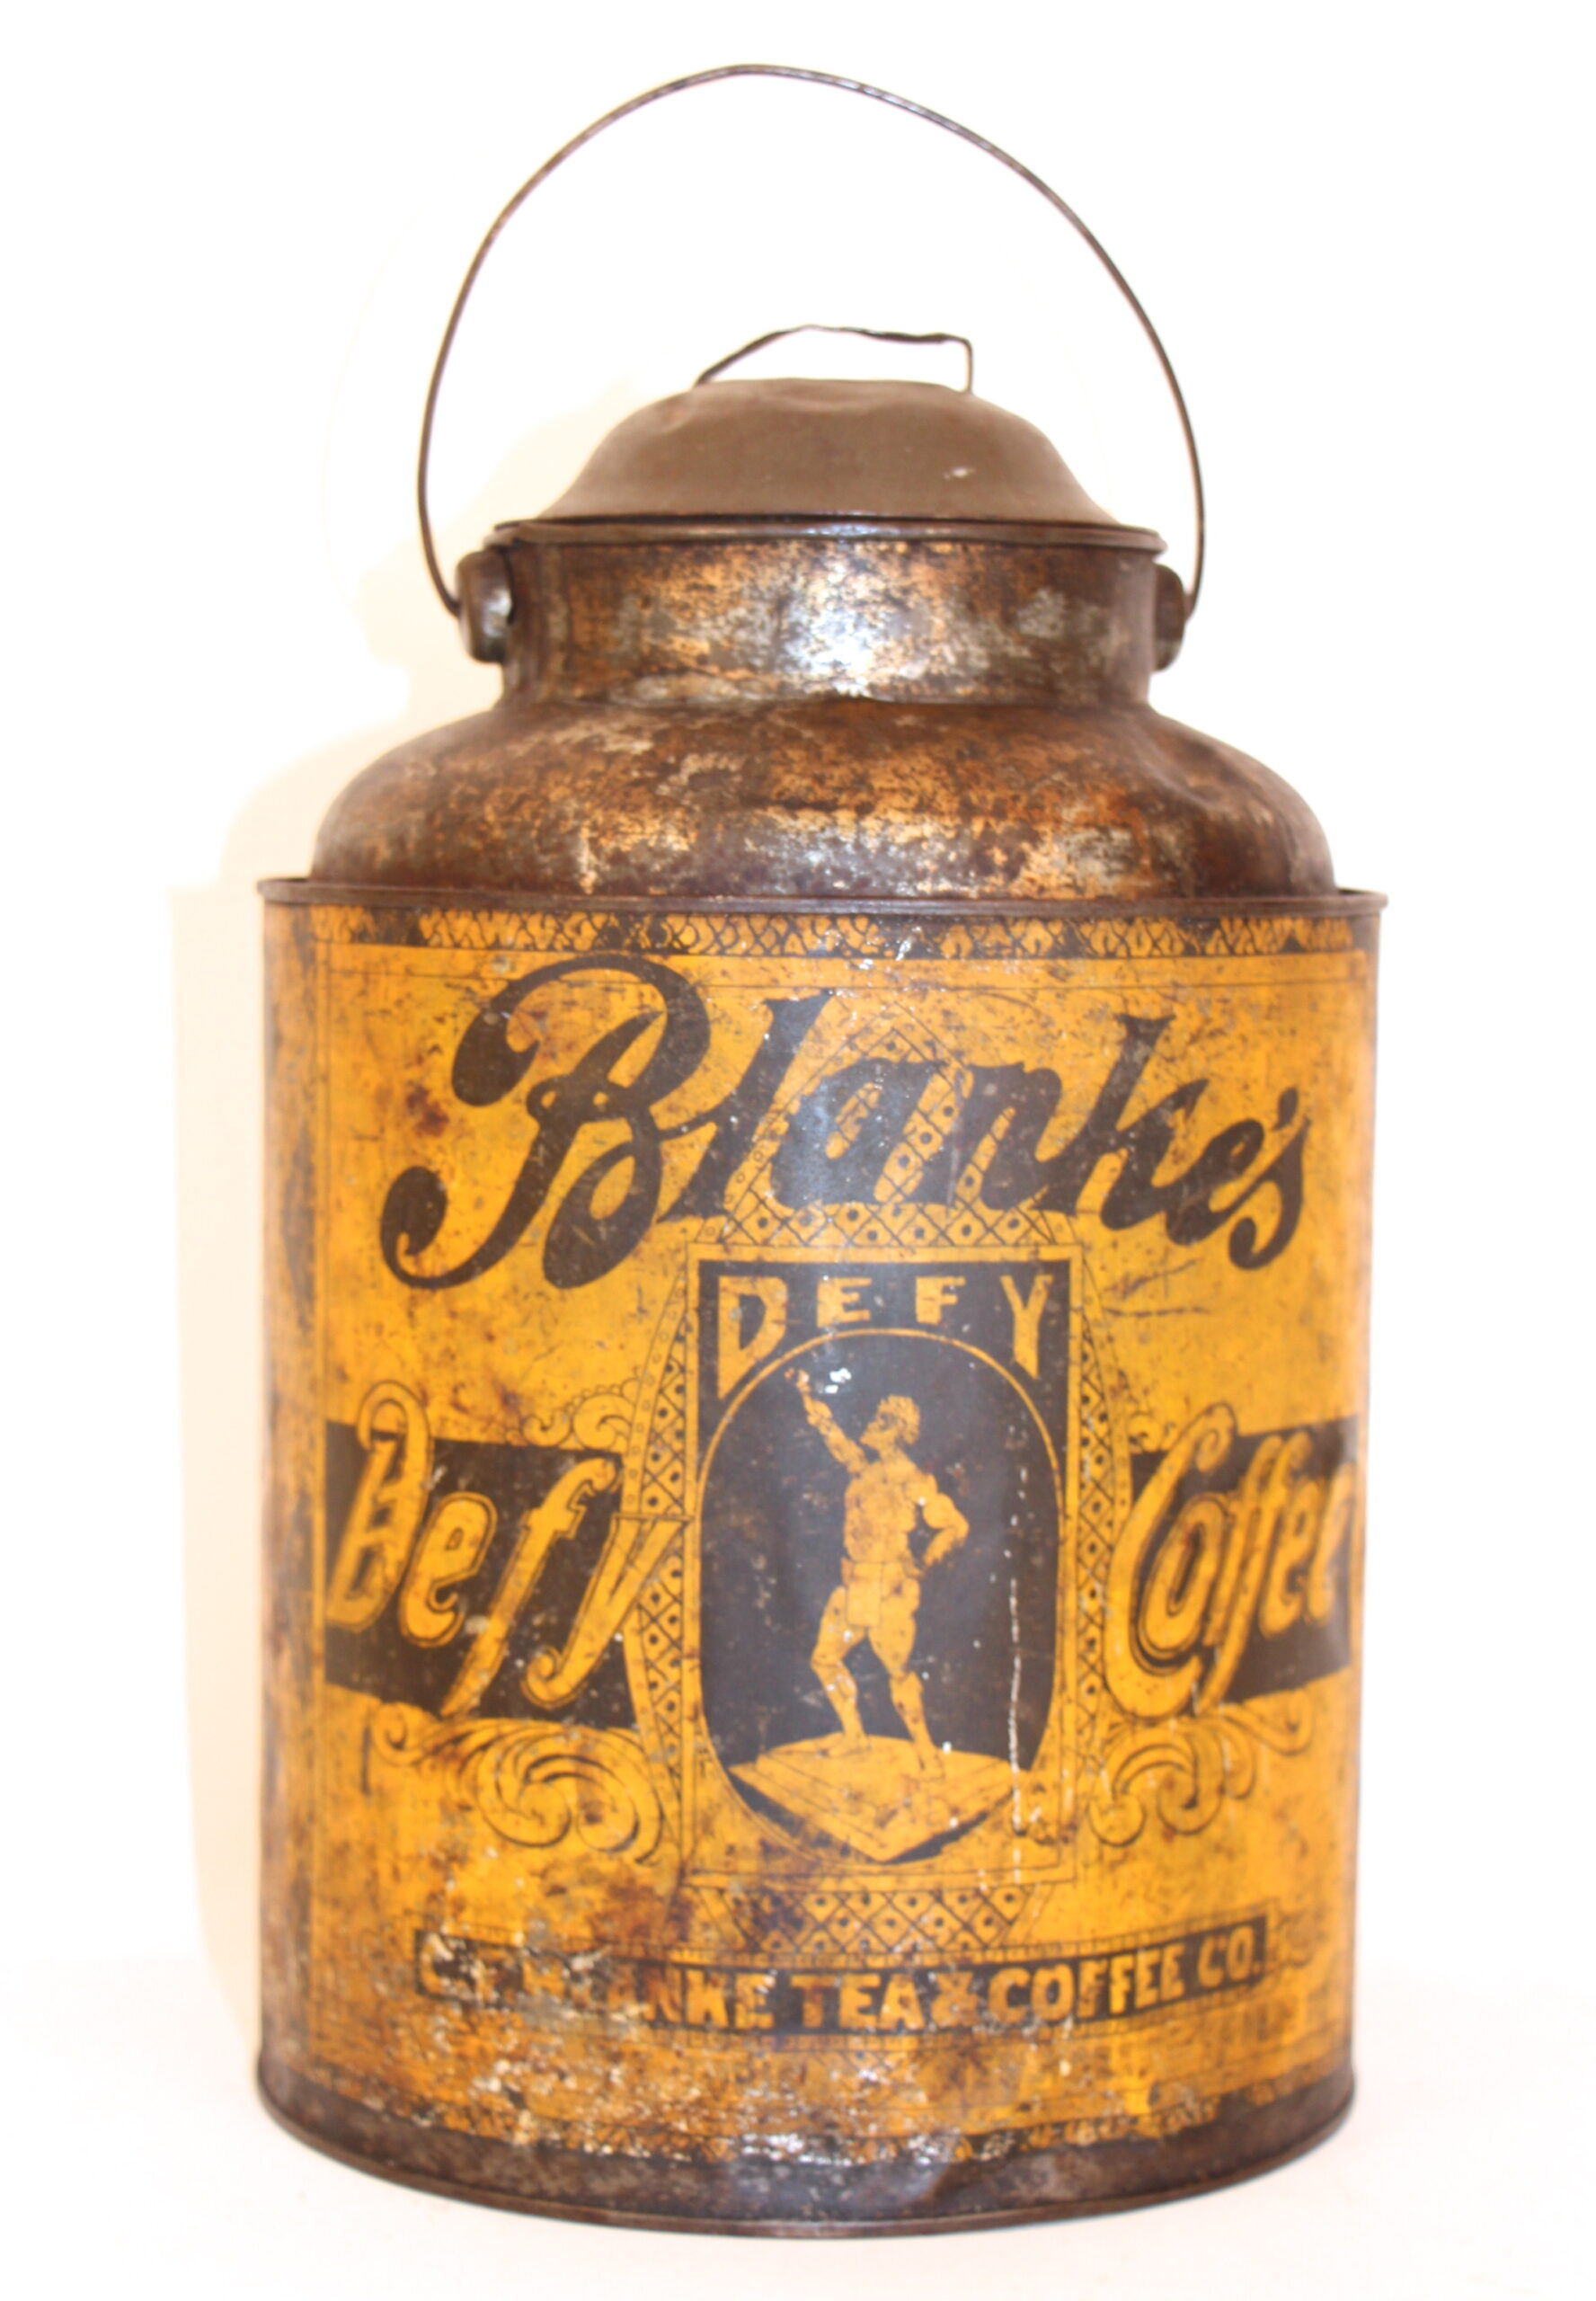 Blanke's Defy Coffee Tin, C. F. Blanke Coffee Co., St. Louis, MO